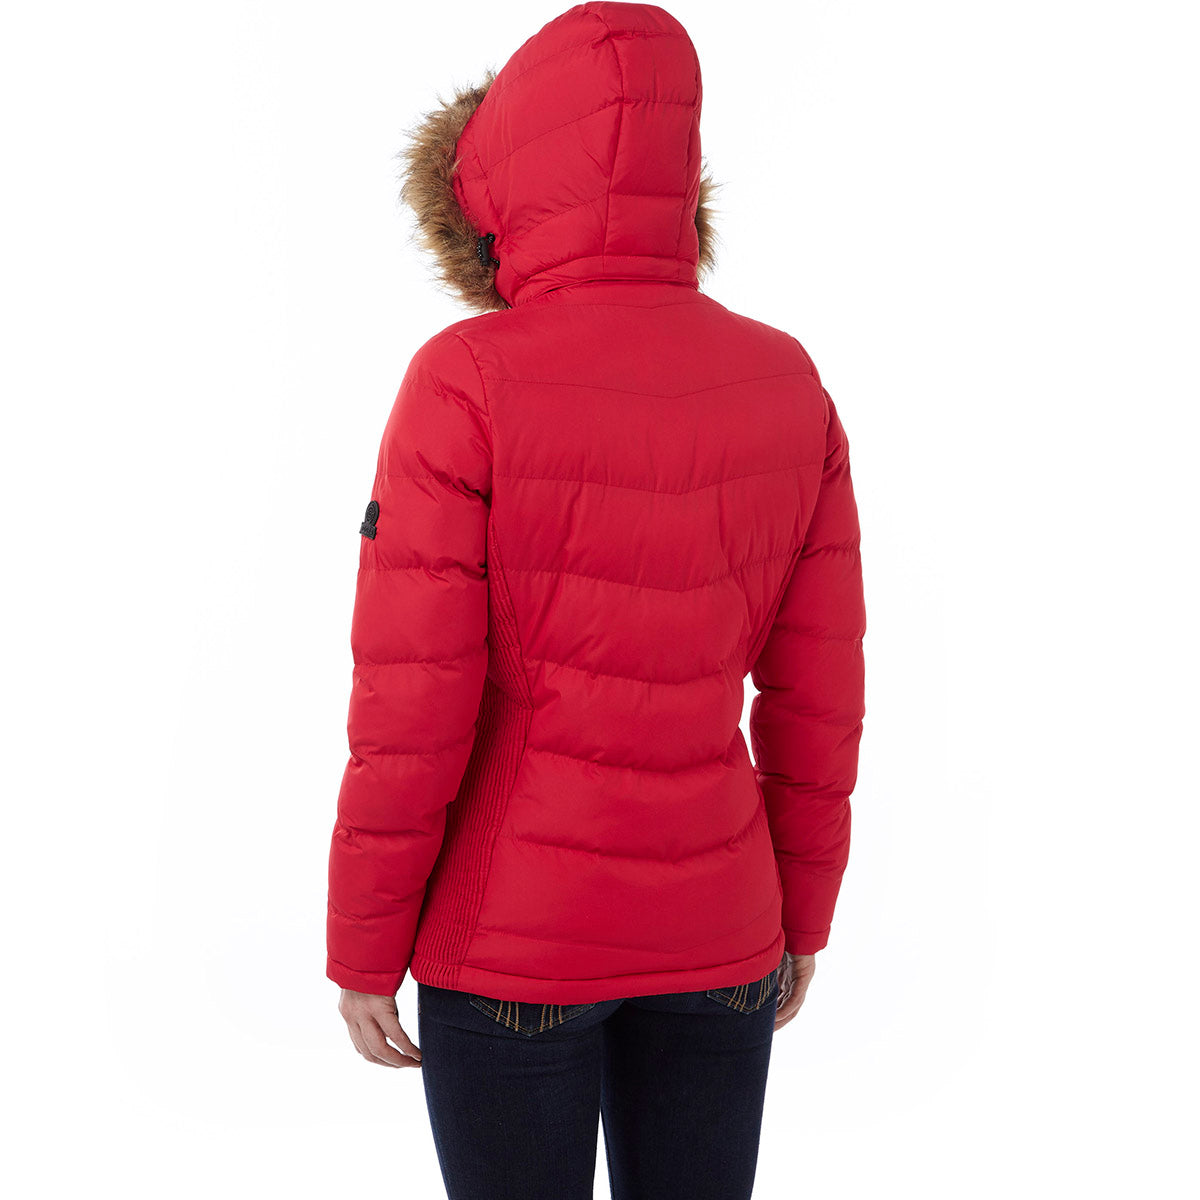 York Womens TCZ Thermal Jacket - Rouge Red image 4